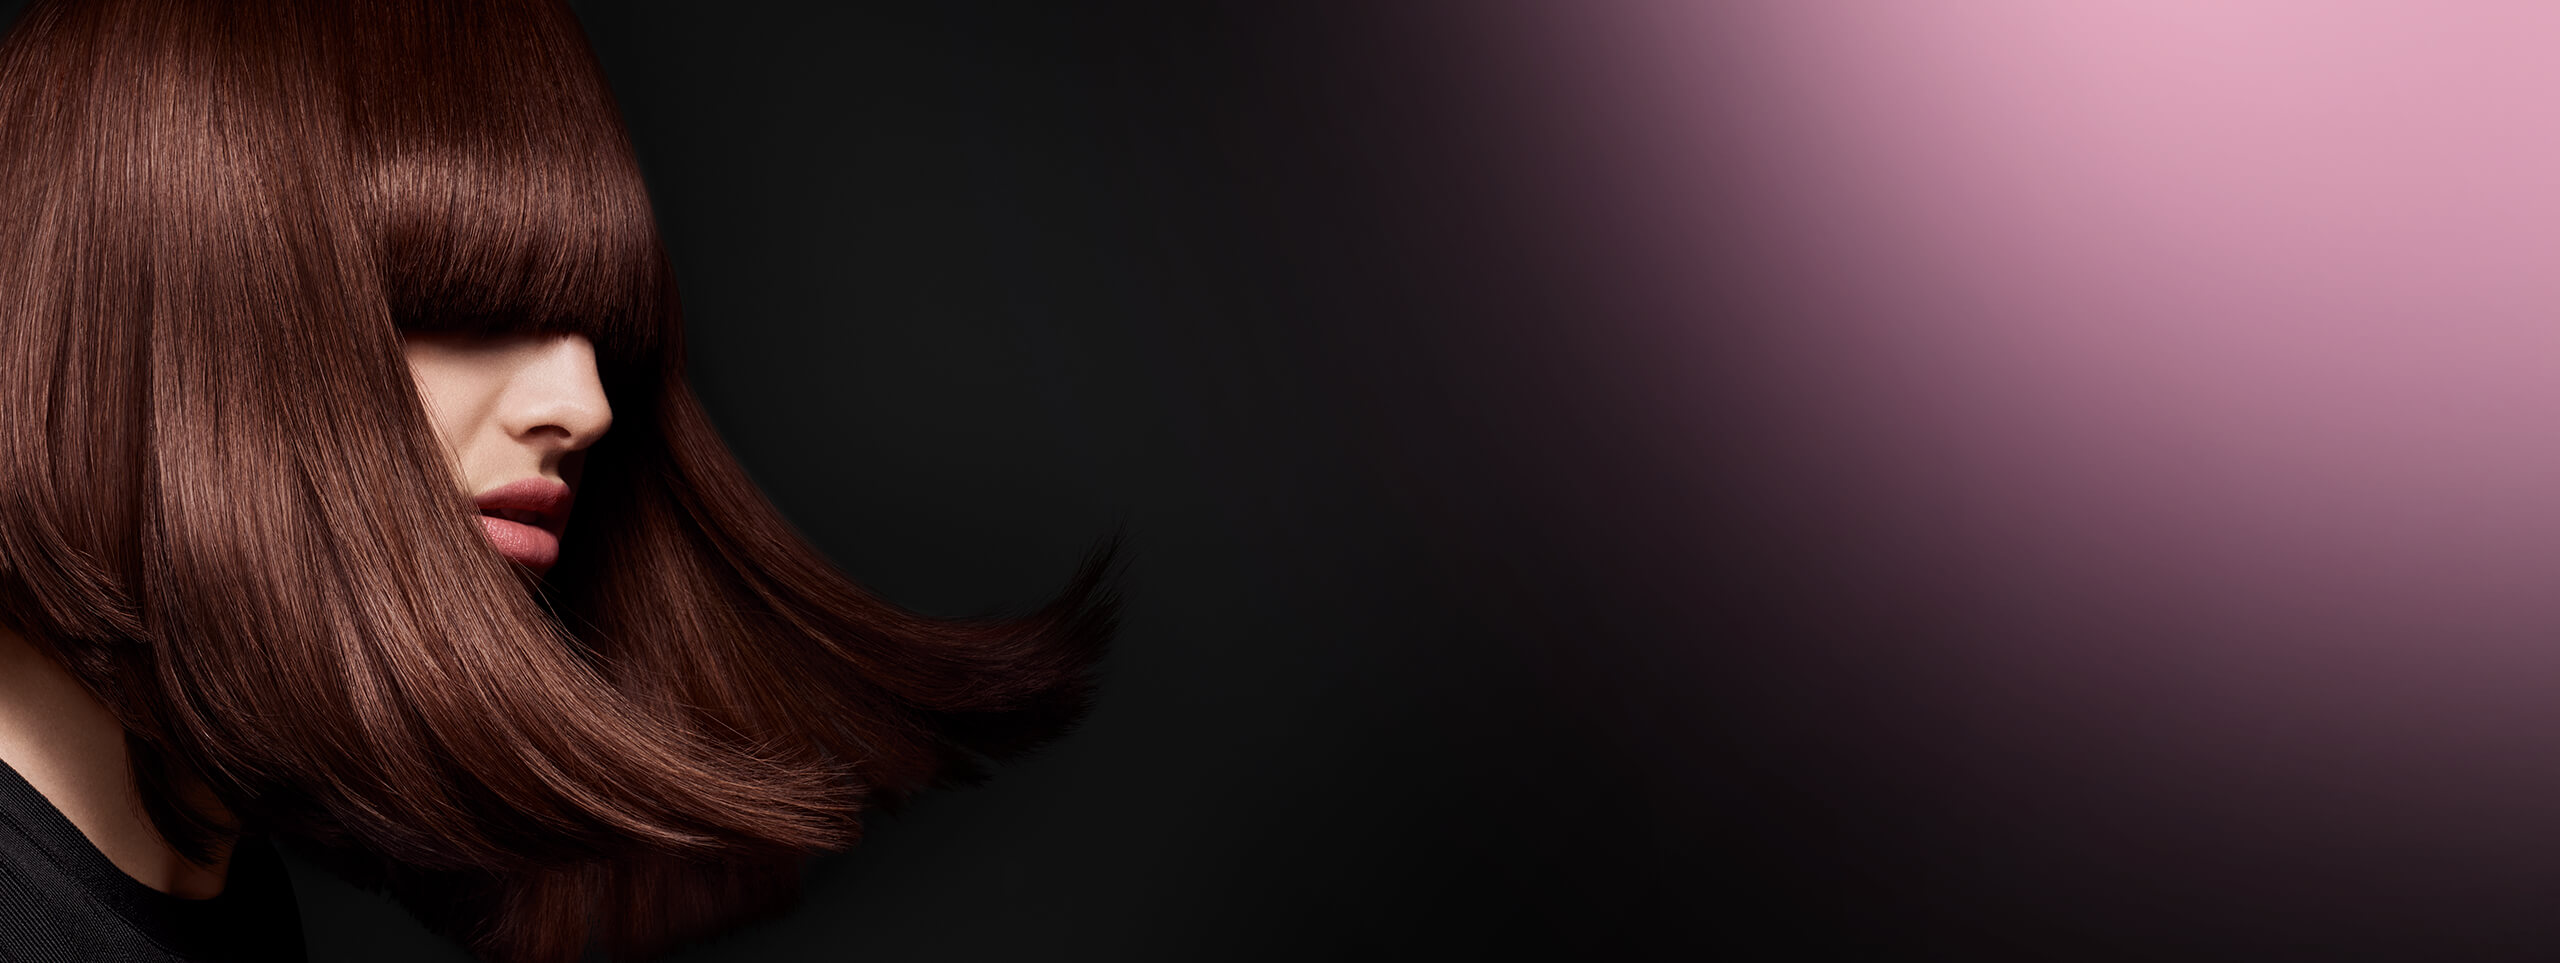 syoss_com_color_salonplex_salontrends_2560x963